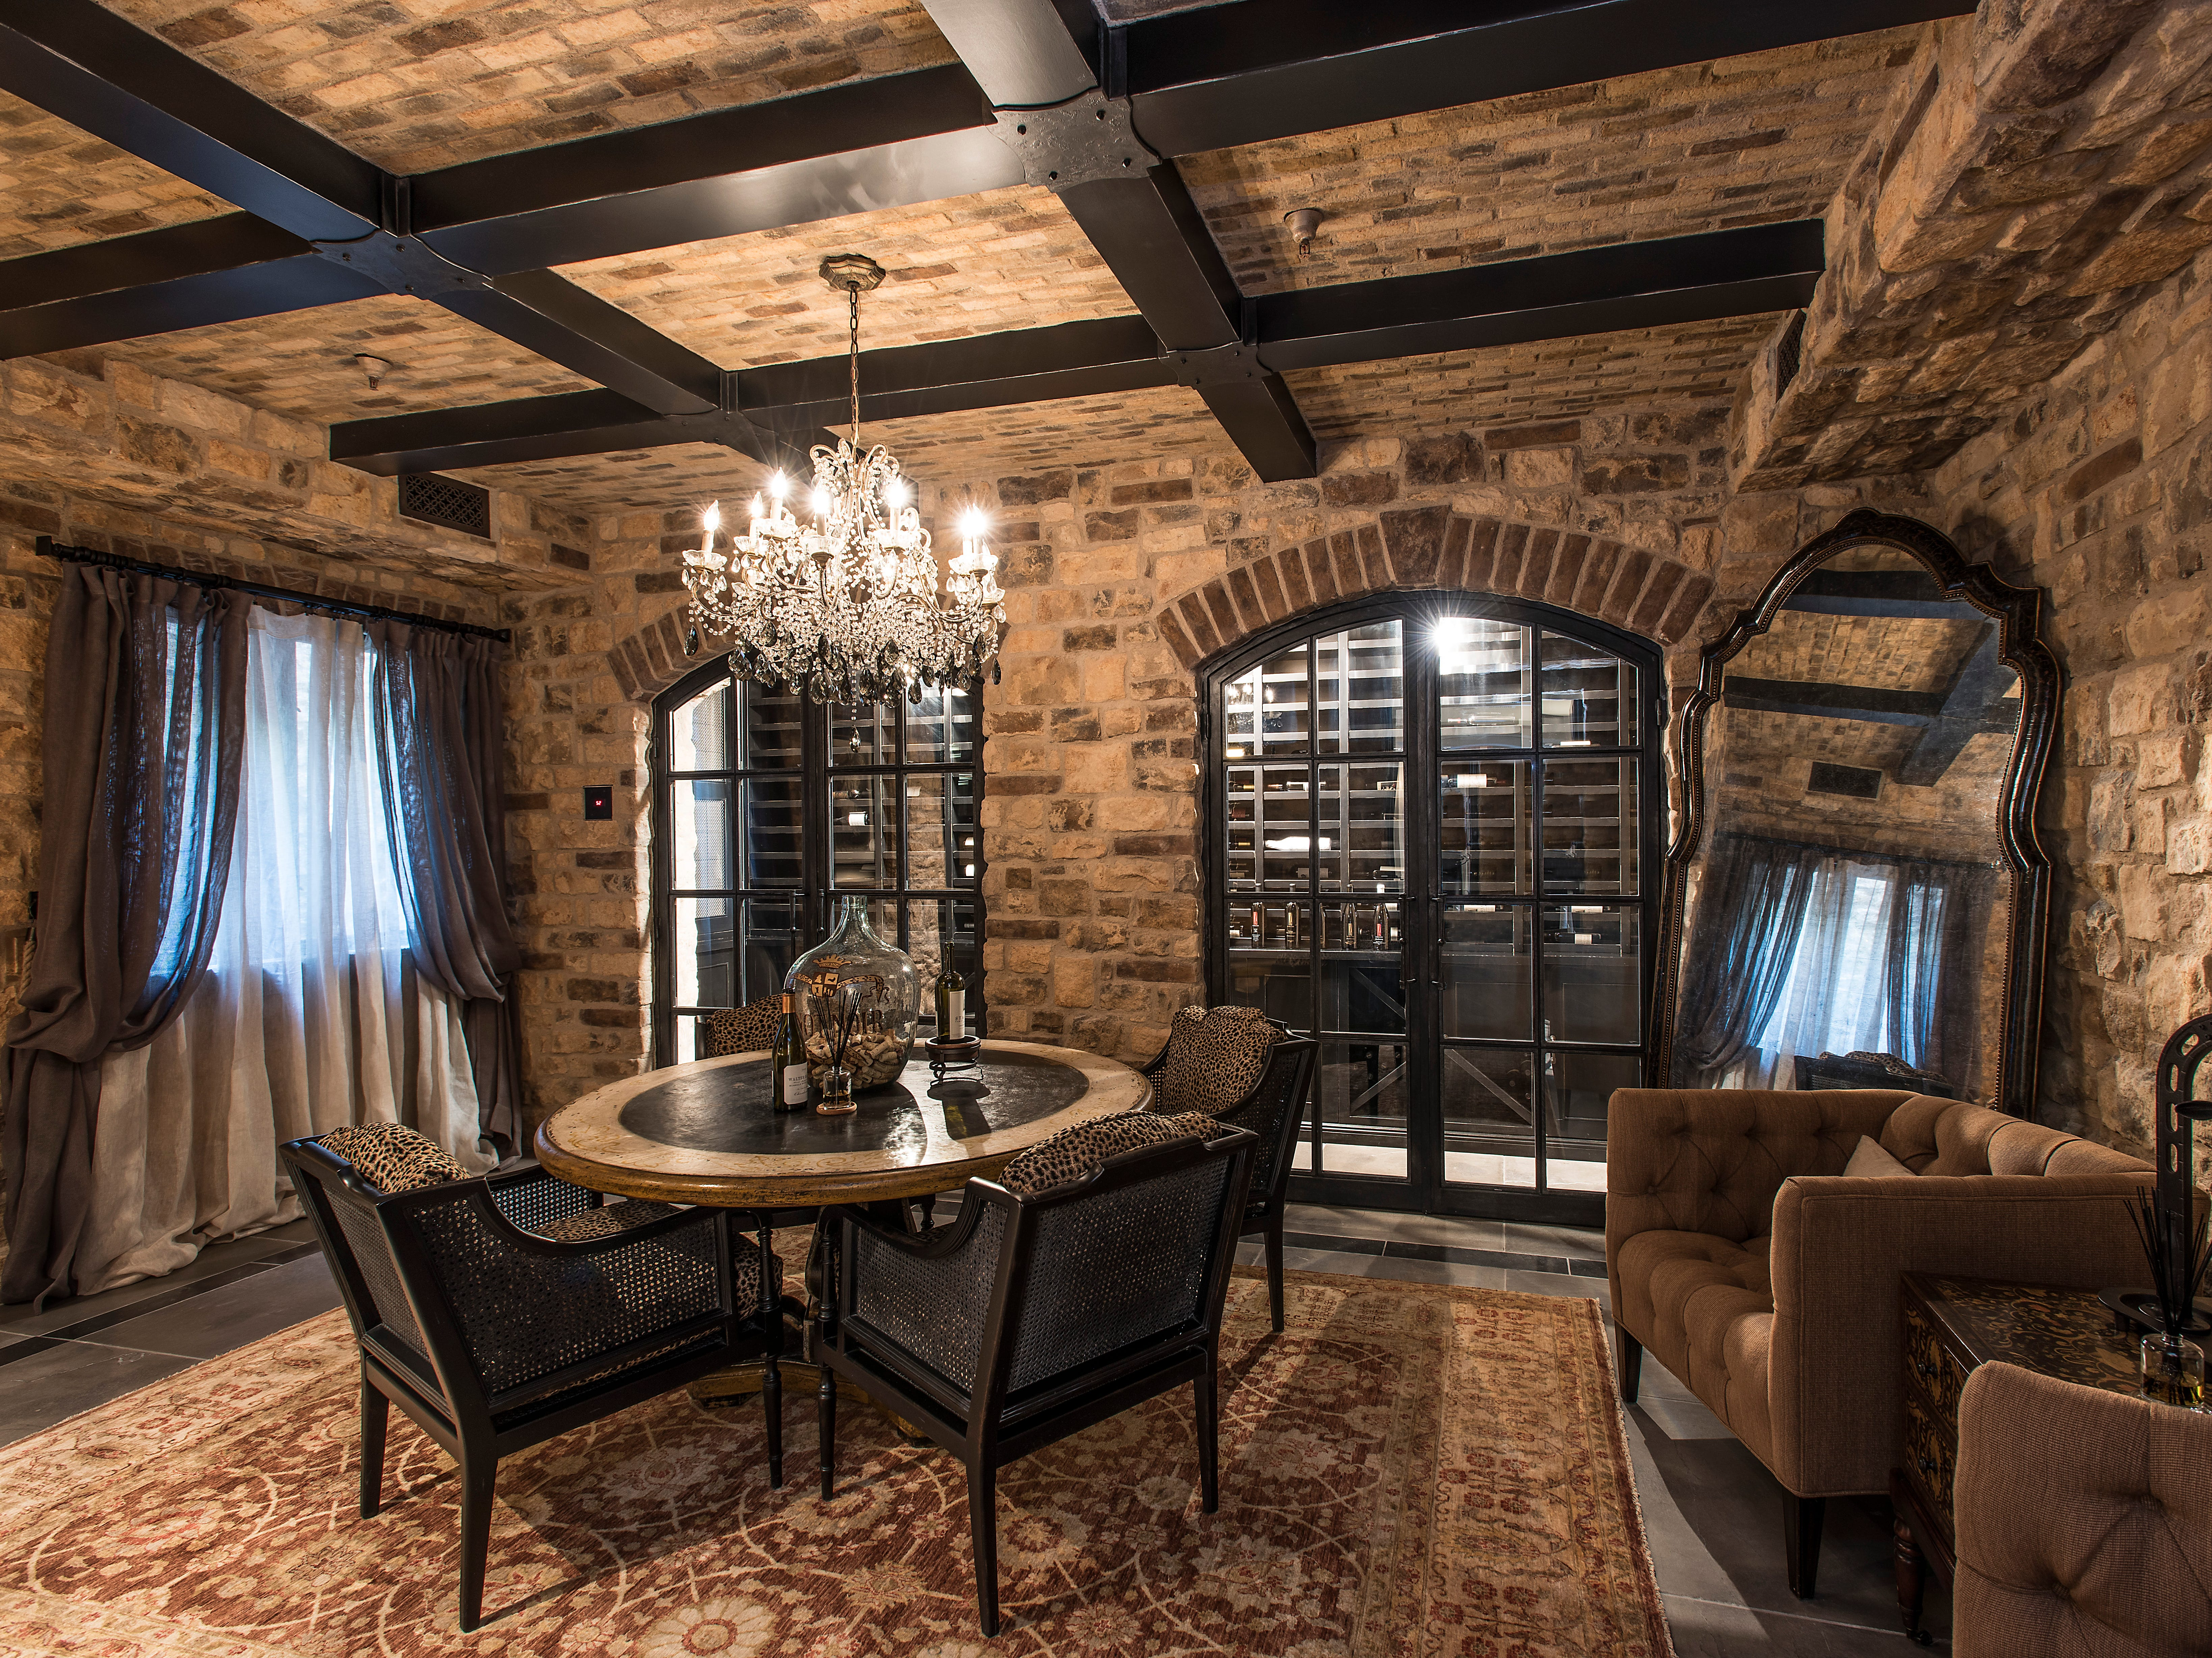 """The 10,000-square-foot home attorney Glen Lerner has listed for sale for $6.99 million comes with a billiards room, workout studio, wine cellar and home theater. The """"resort-style"""" mansion, built in 2009, also has five bedrooms, seven bathrooms, a guest casita and a four-car garage. Look for """"multiple fire features"""" outside near the pool and spa."""